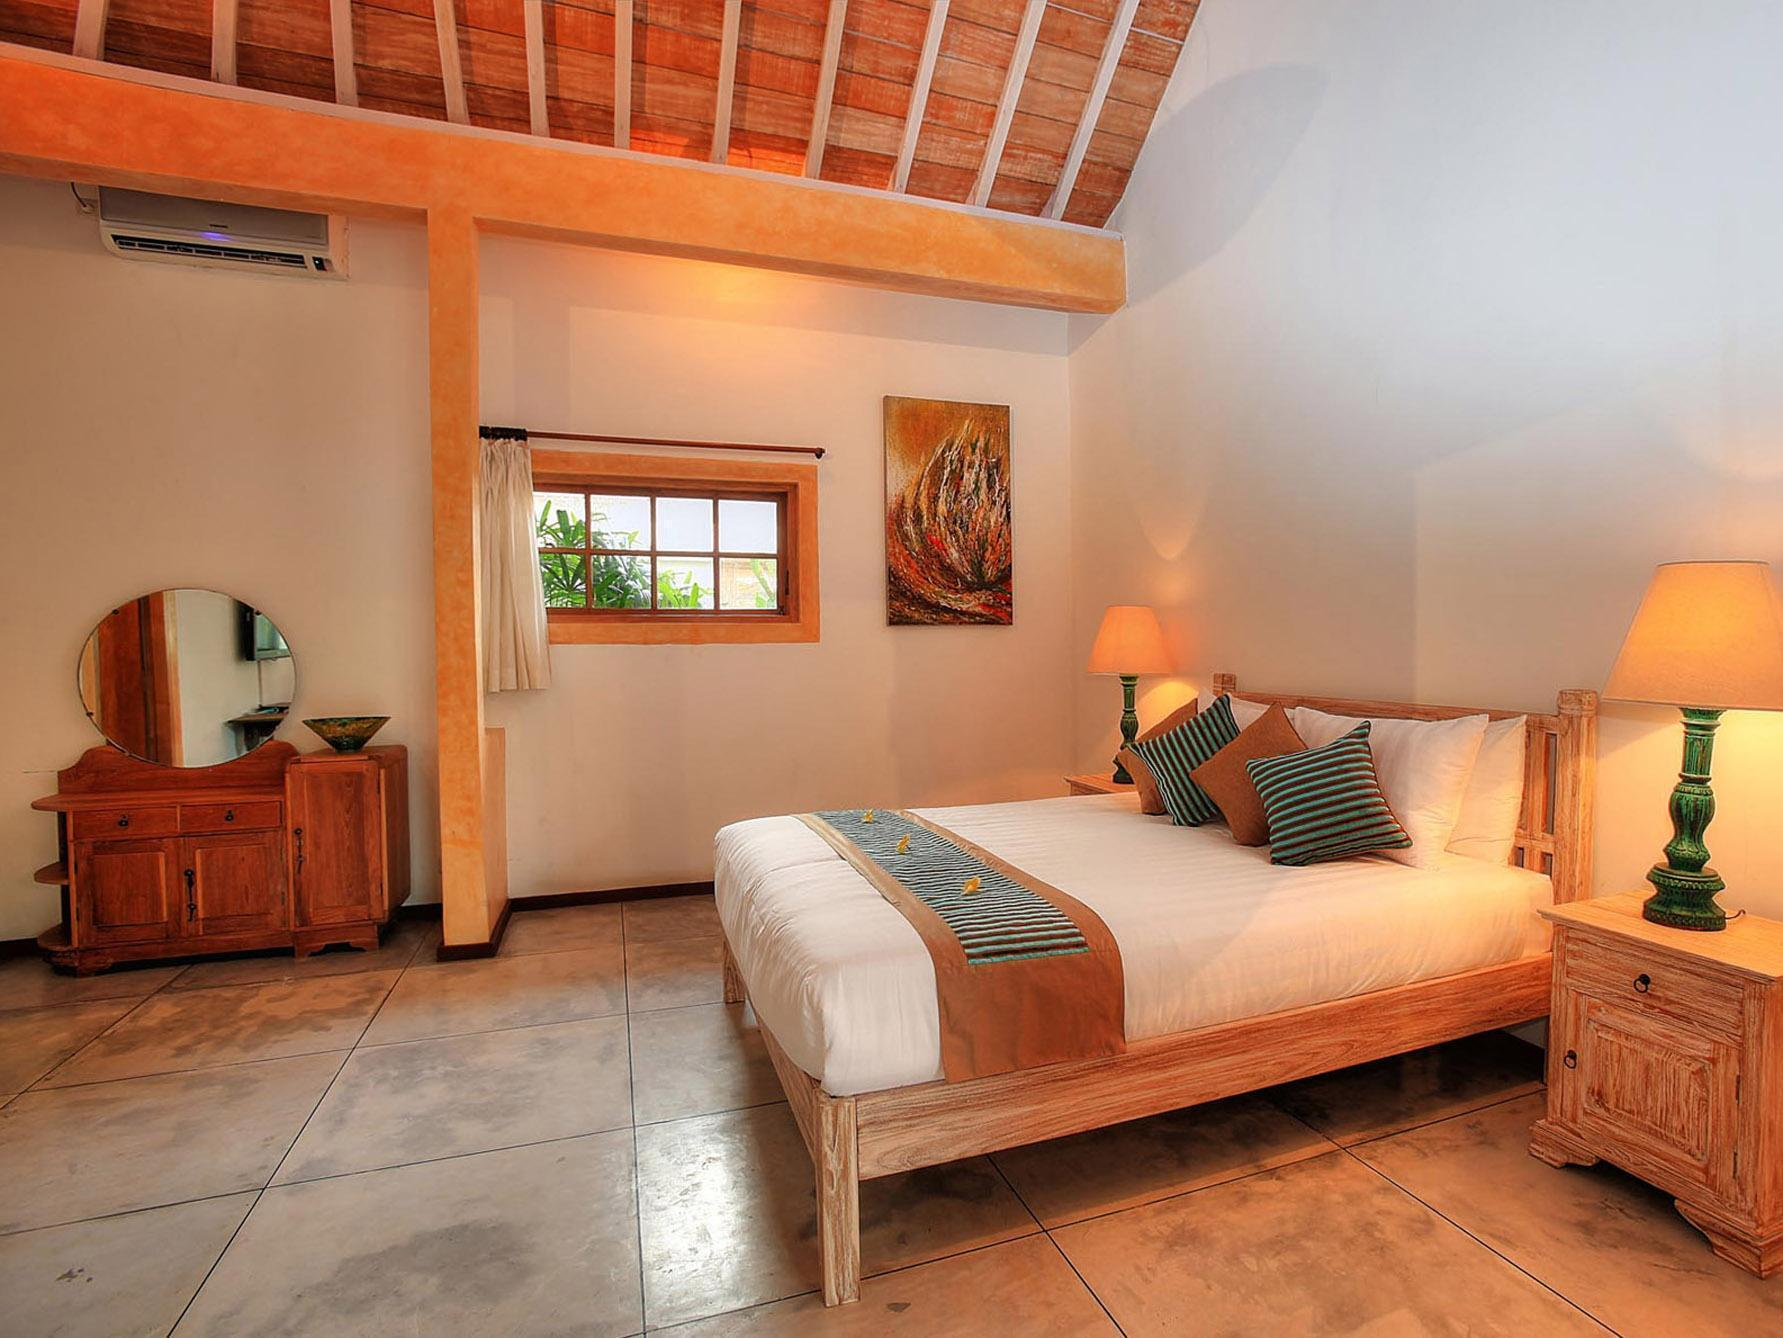 Vila 3 Quartos com piscina (3 Bedroom Pool Villa)